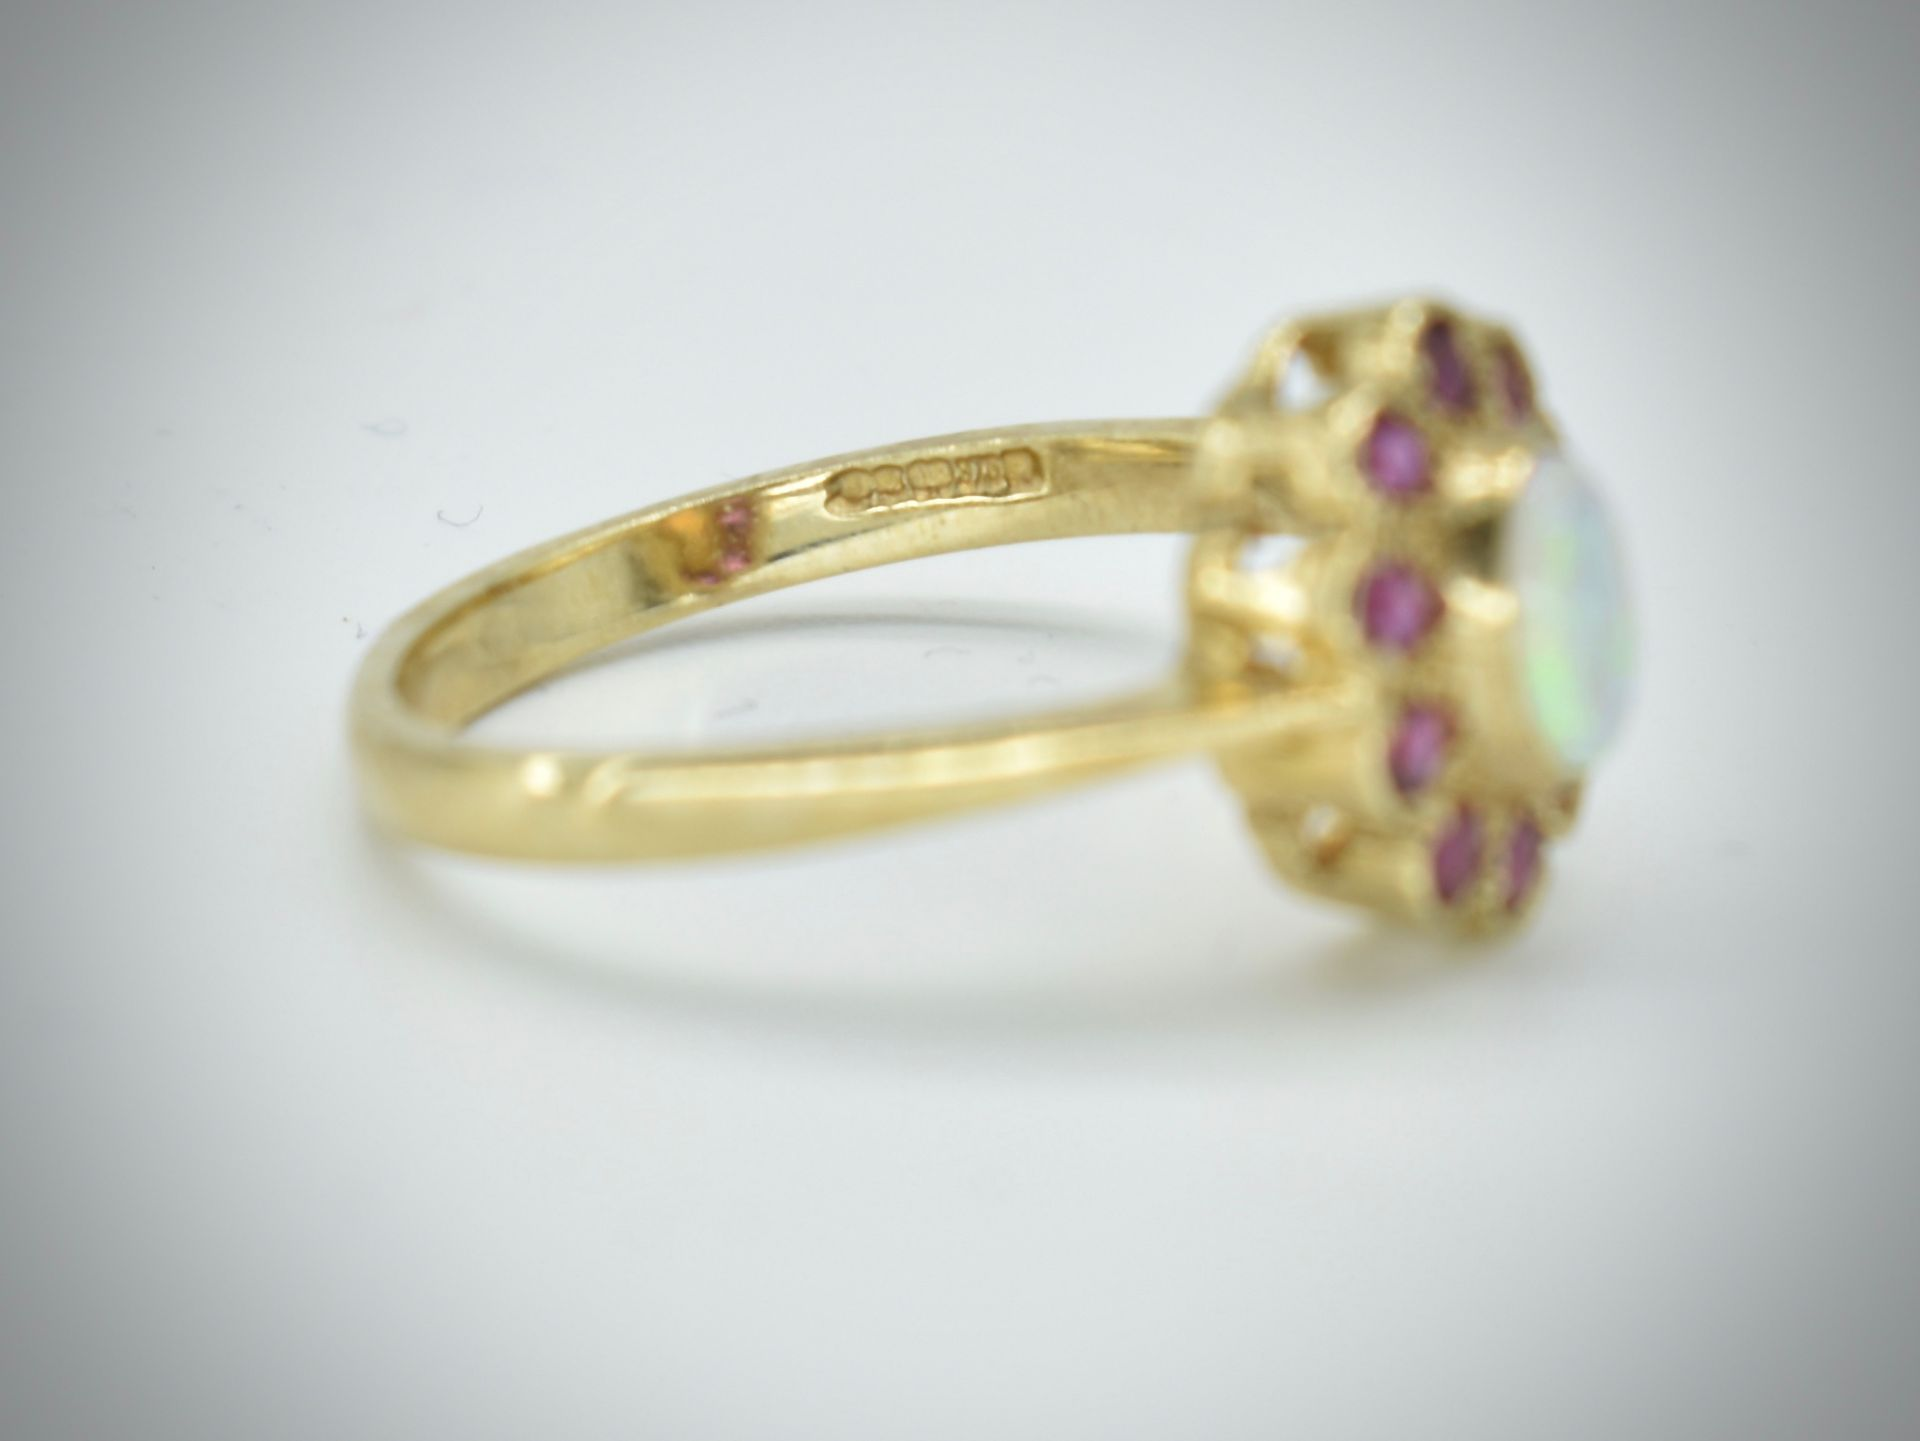 9ct Opal & Ruby Cluster Ring - Image 3 of 3